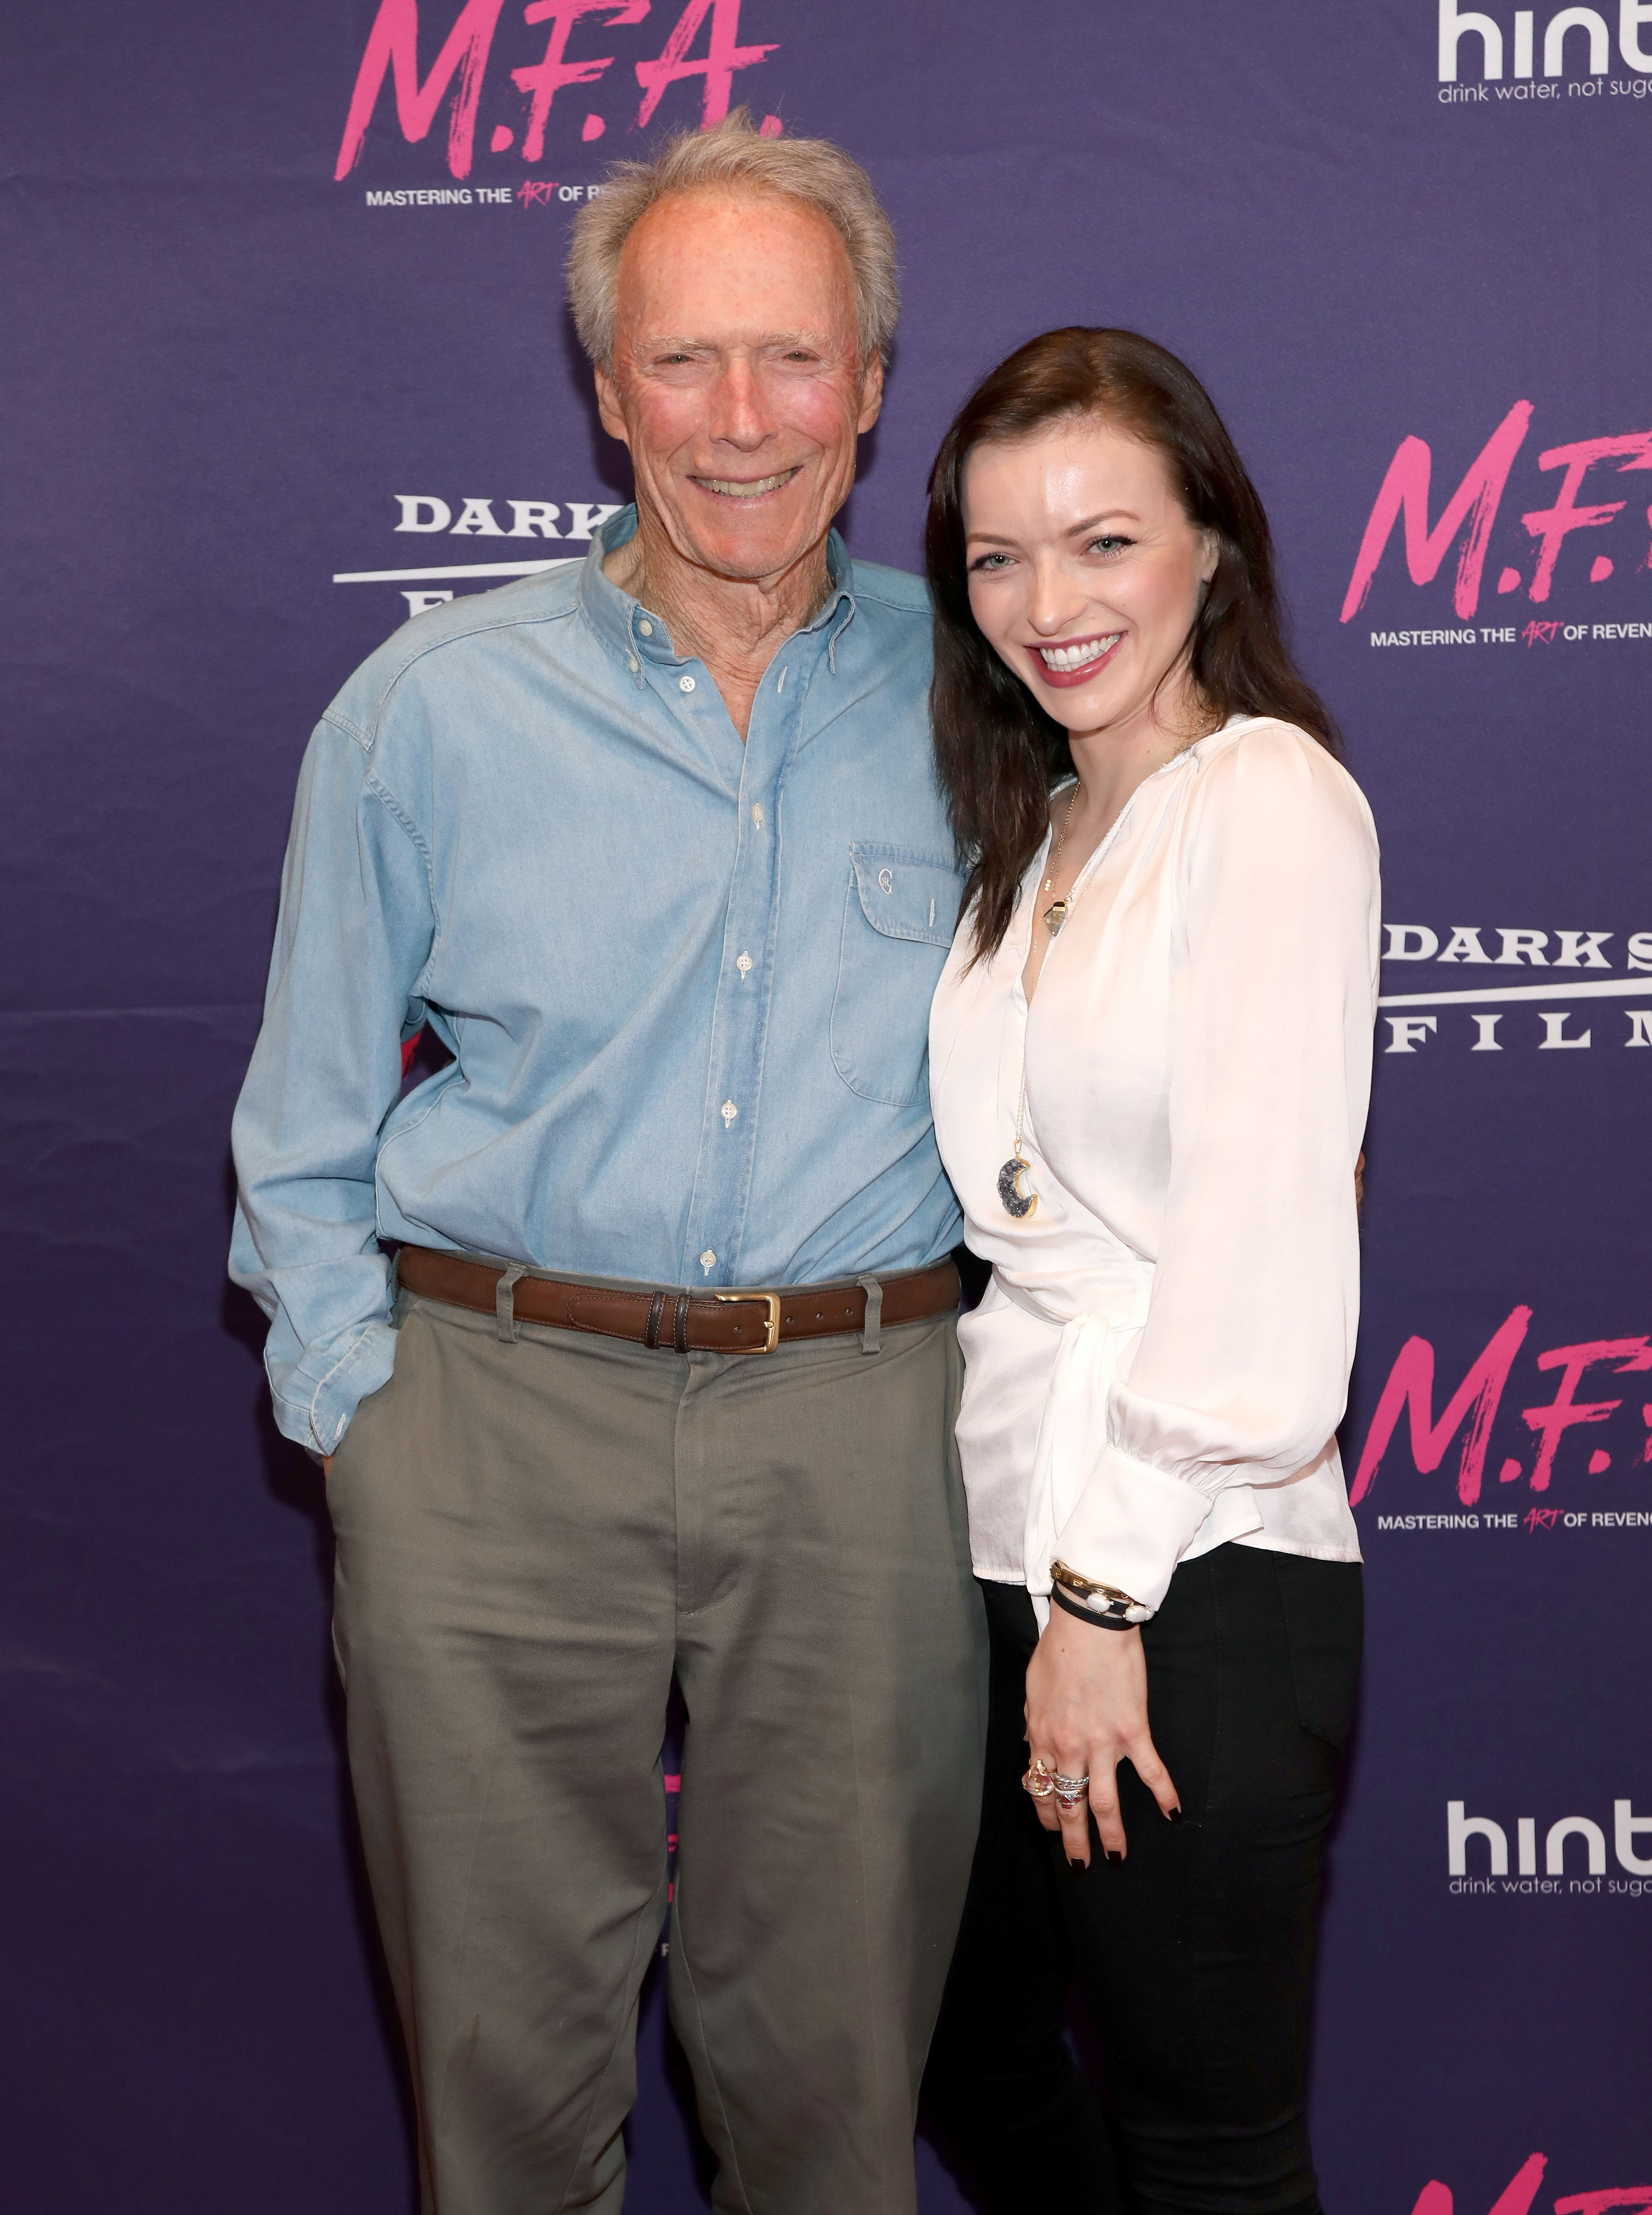 """Clint Eastwood poses with his daughter/actress Francesca Eastwood at the Premiere Of Dark Sky Films' """"M.F.A."""" at The London West Hollywood on October 2, 2017 